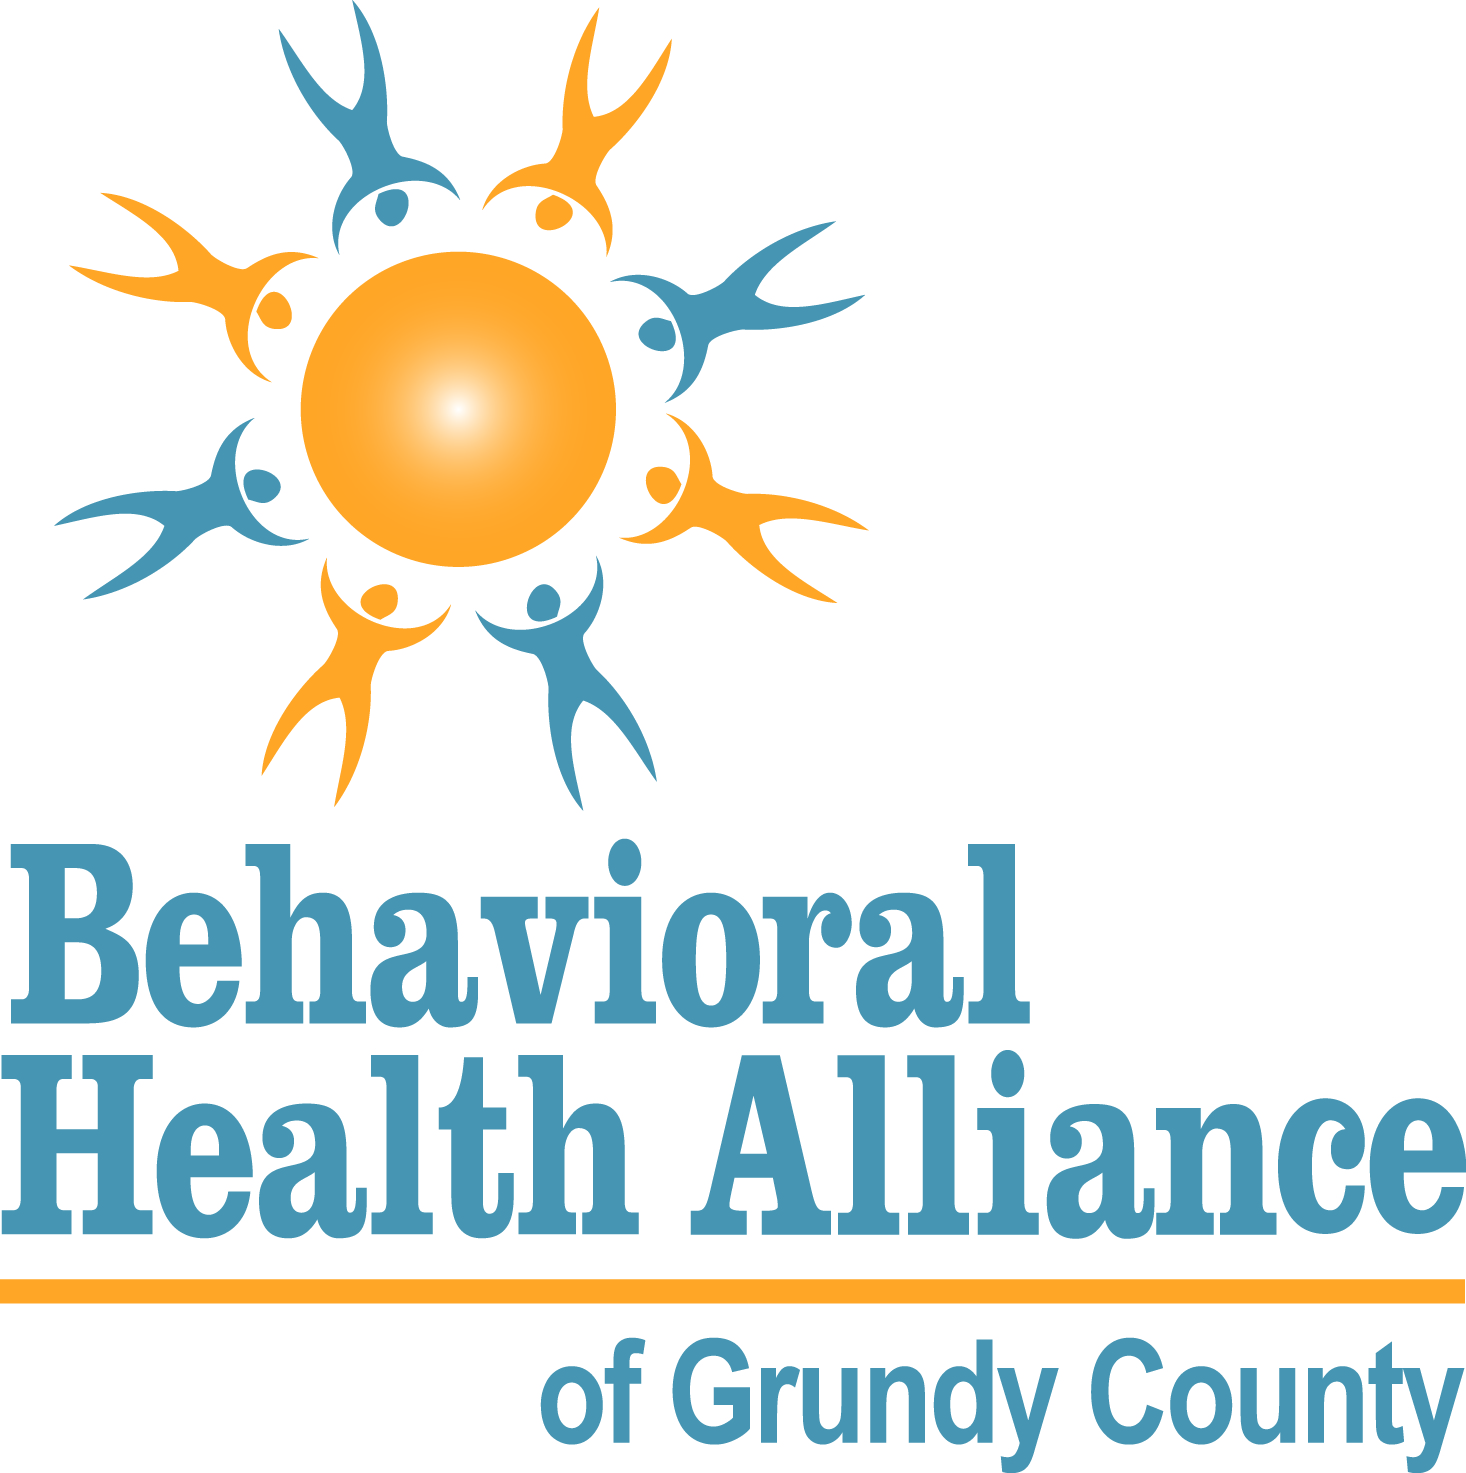 Professionals who serve gc residents who have behavioral health issues